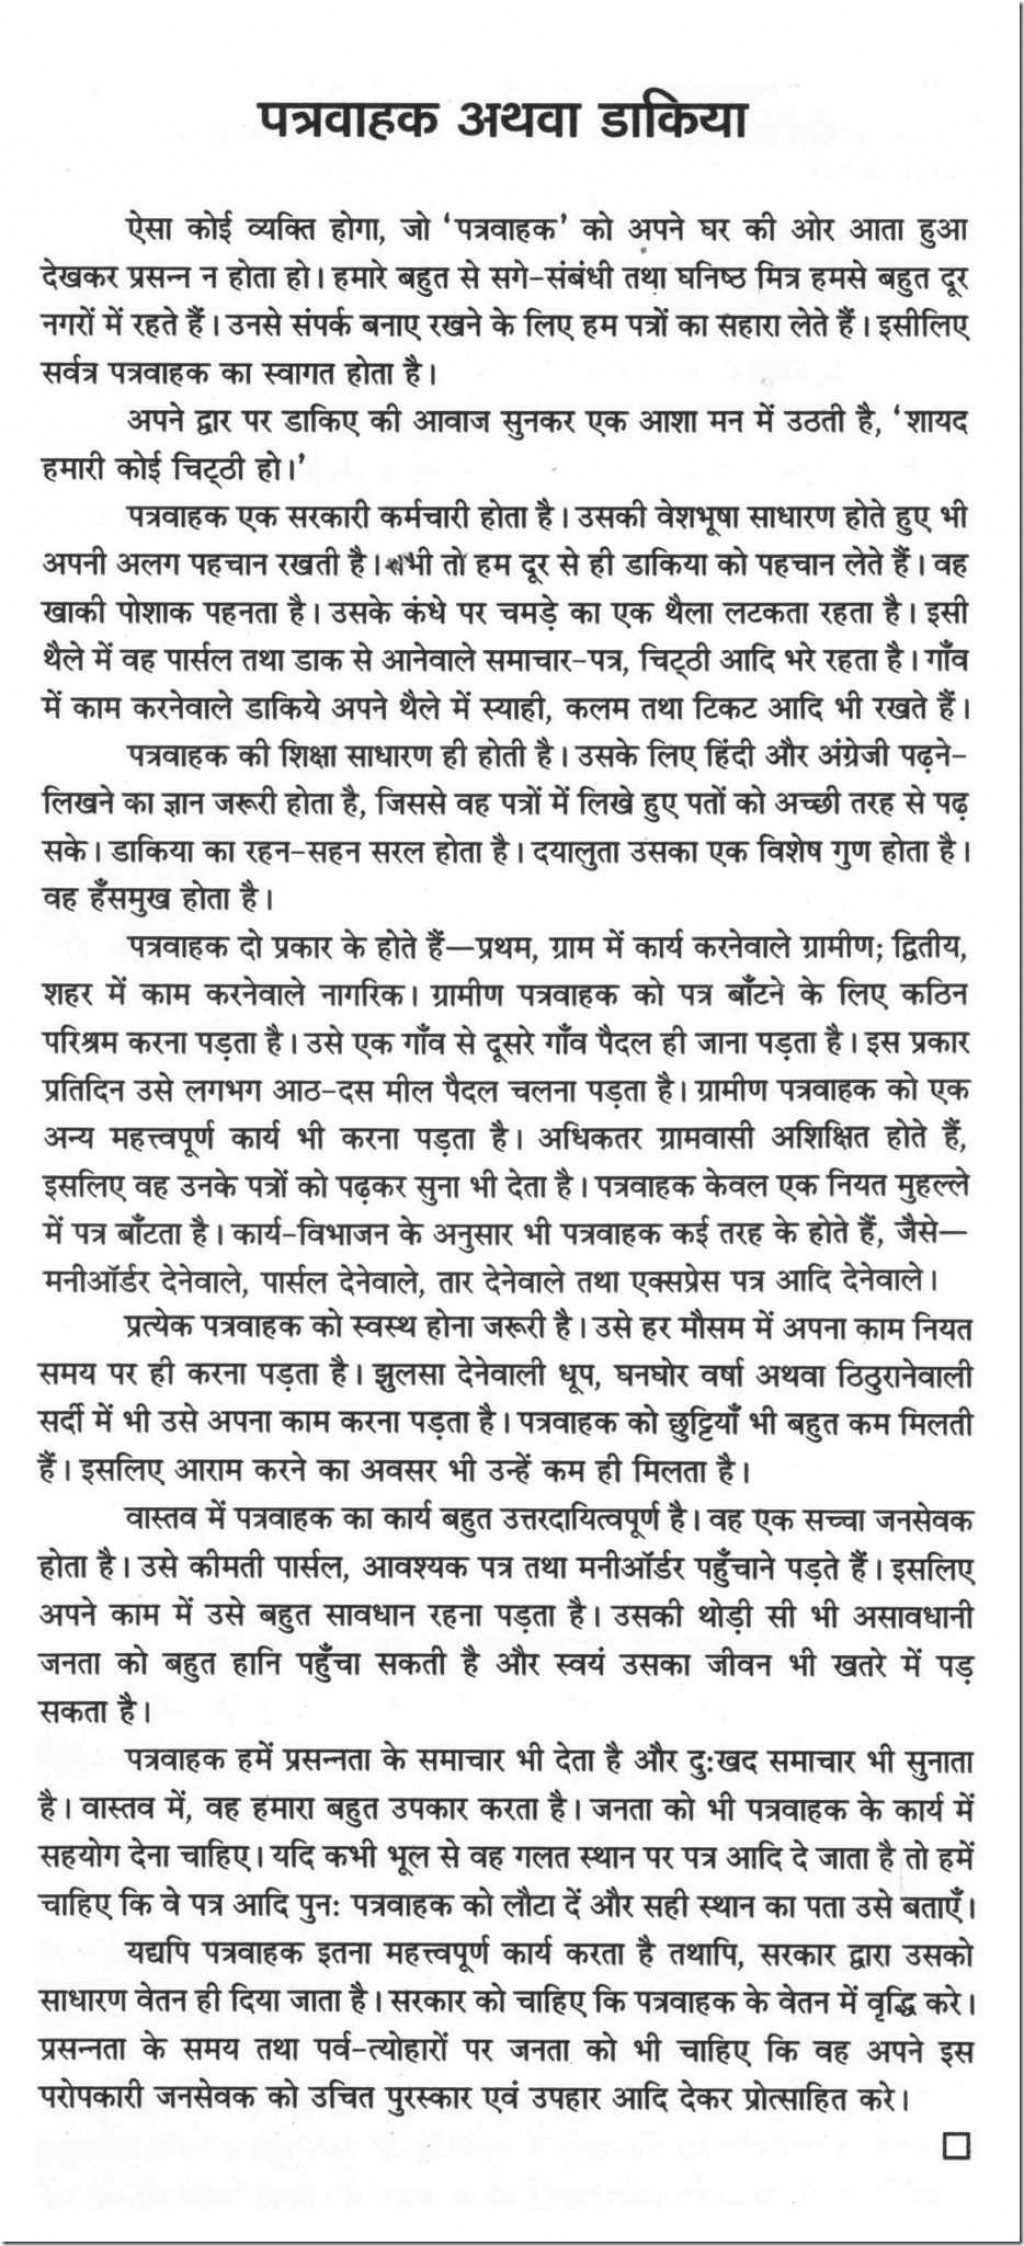 005 Hindi Literature Researchs 10024 Thumb Wonderful Research Papers Large